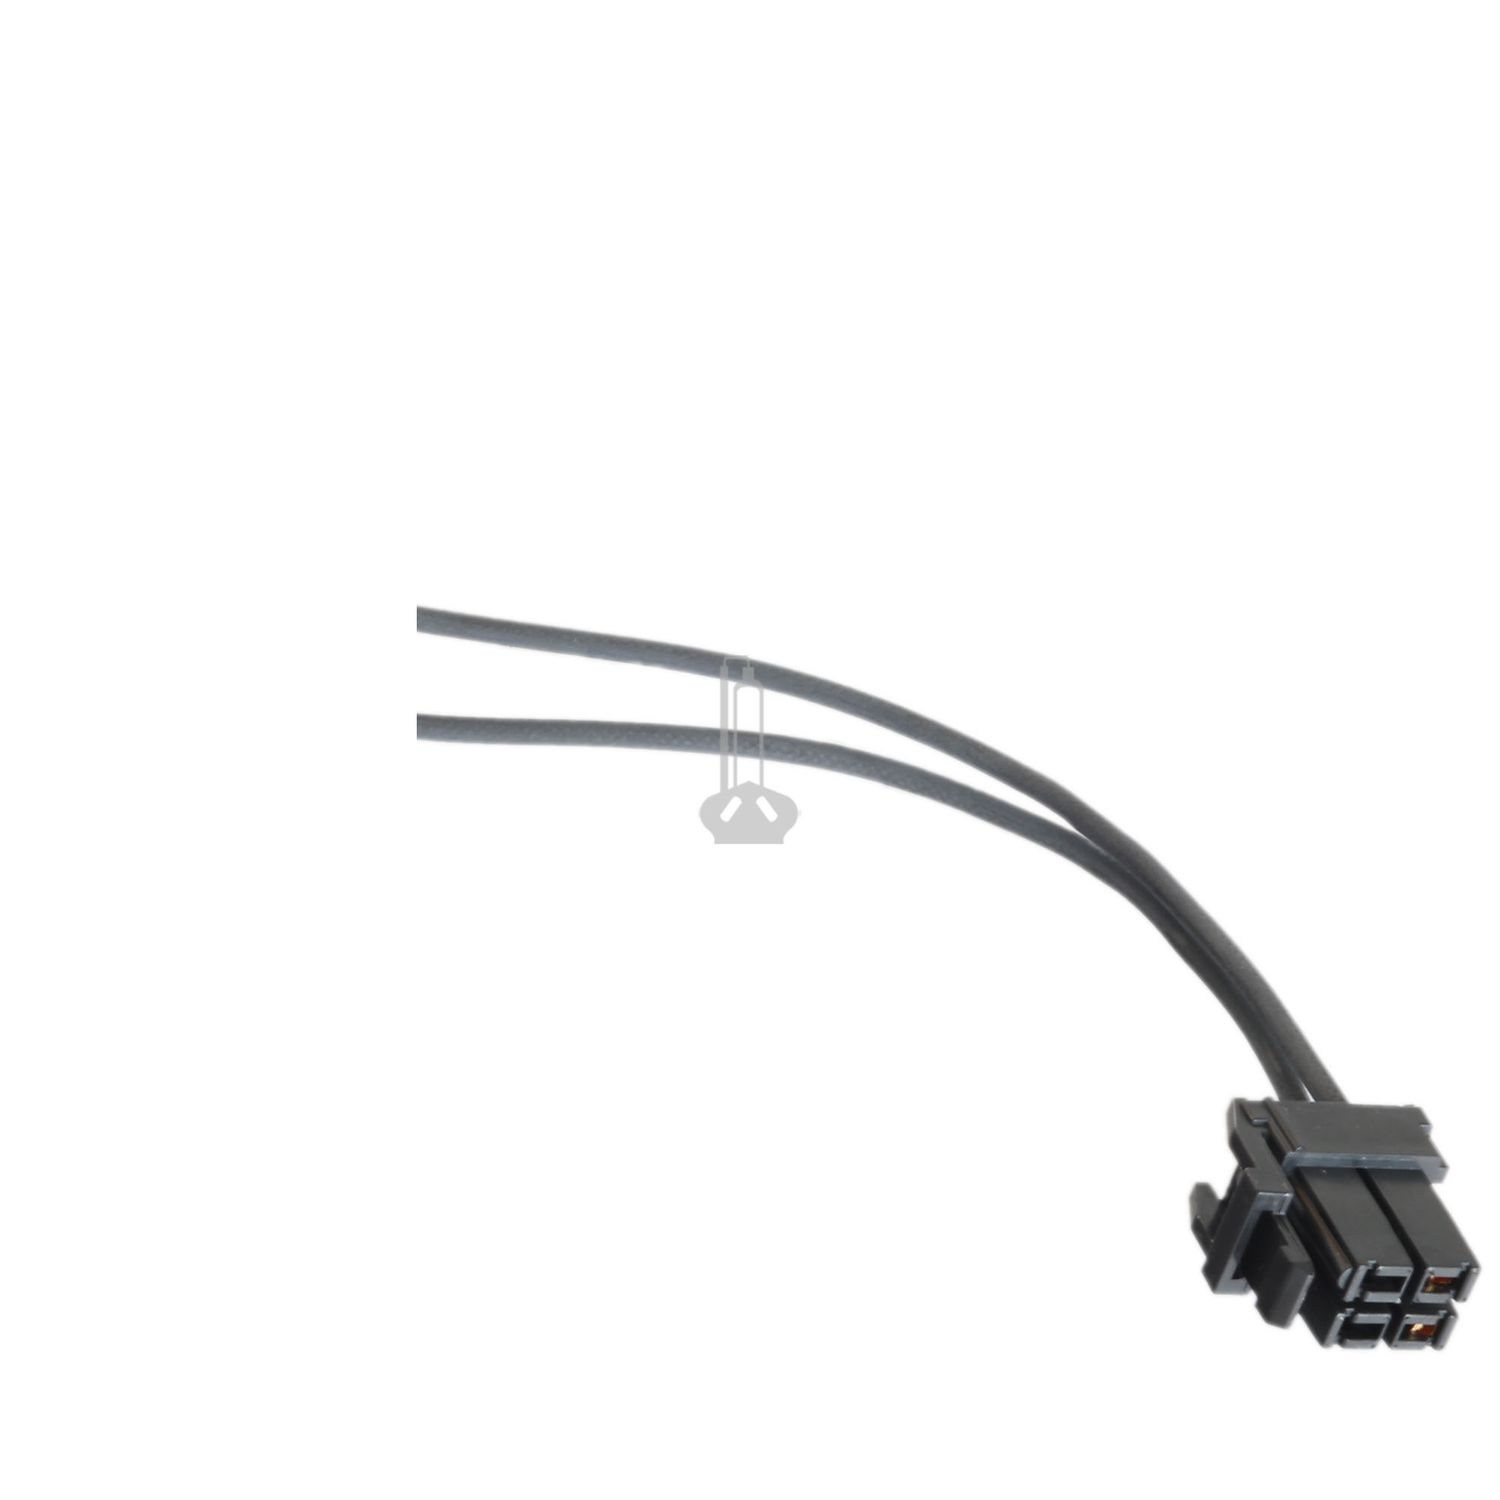 Power connection for Valeo LAD5GL 4PIN D1S Xenon headlight control unit